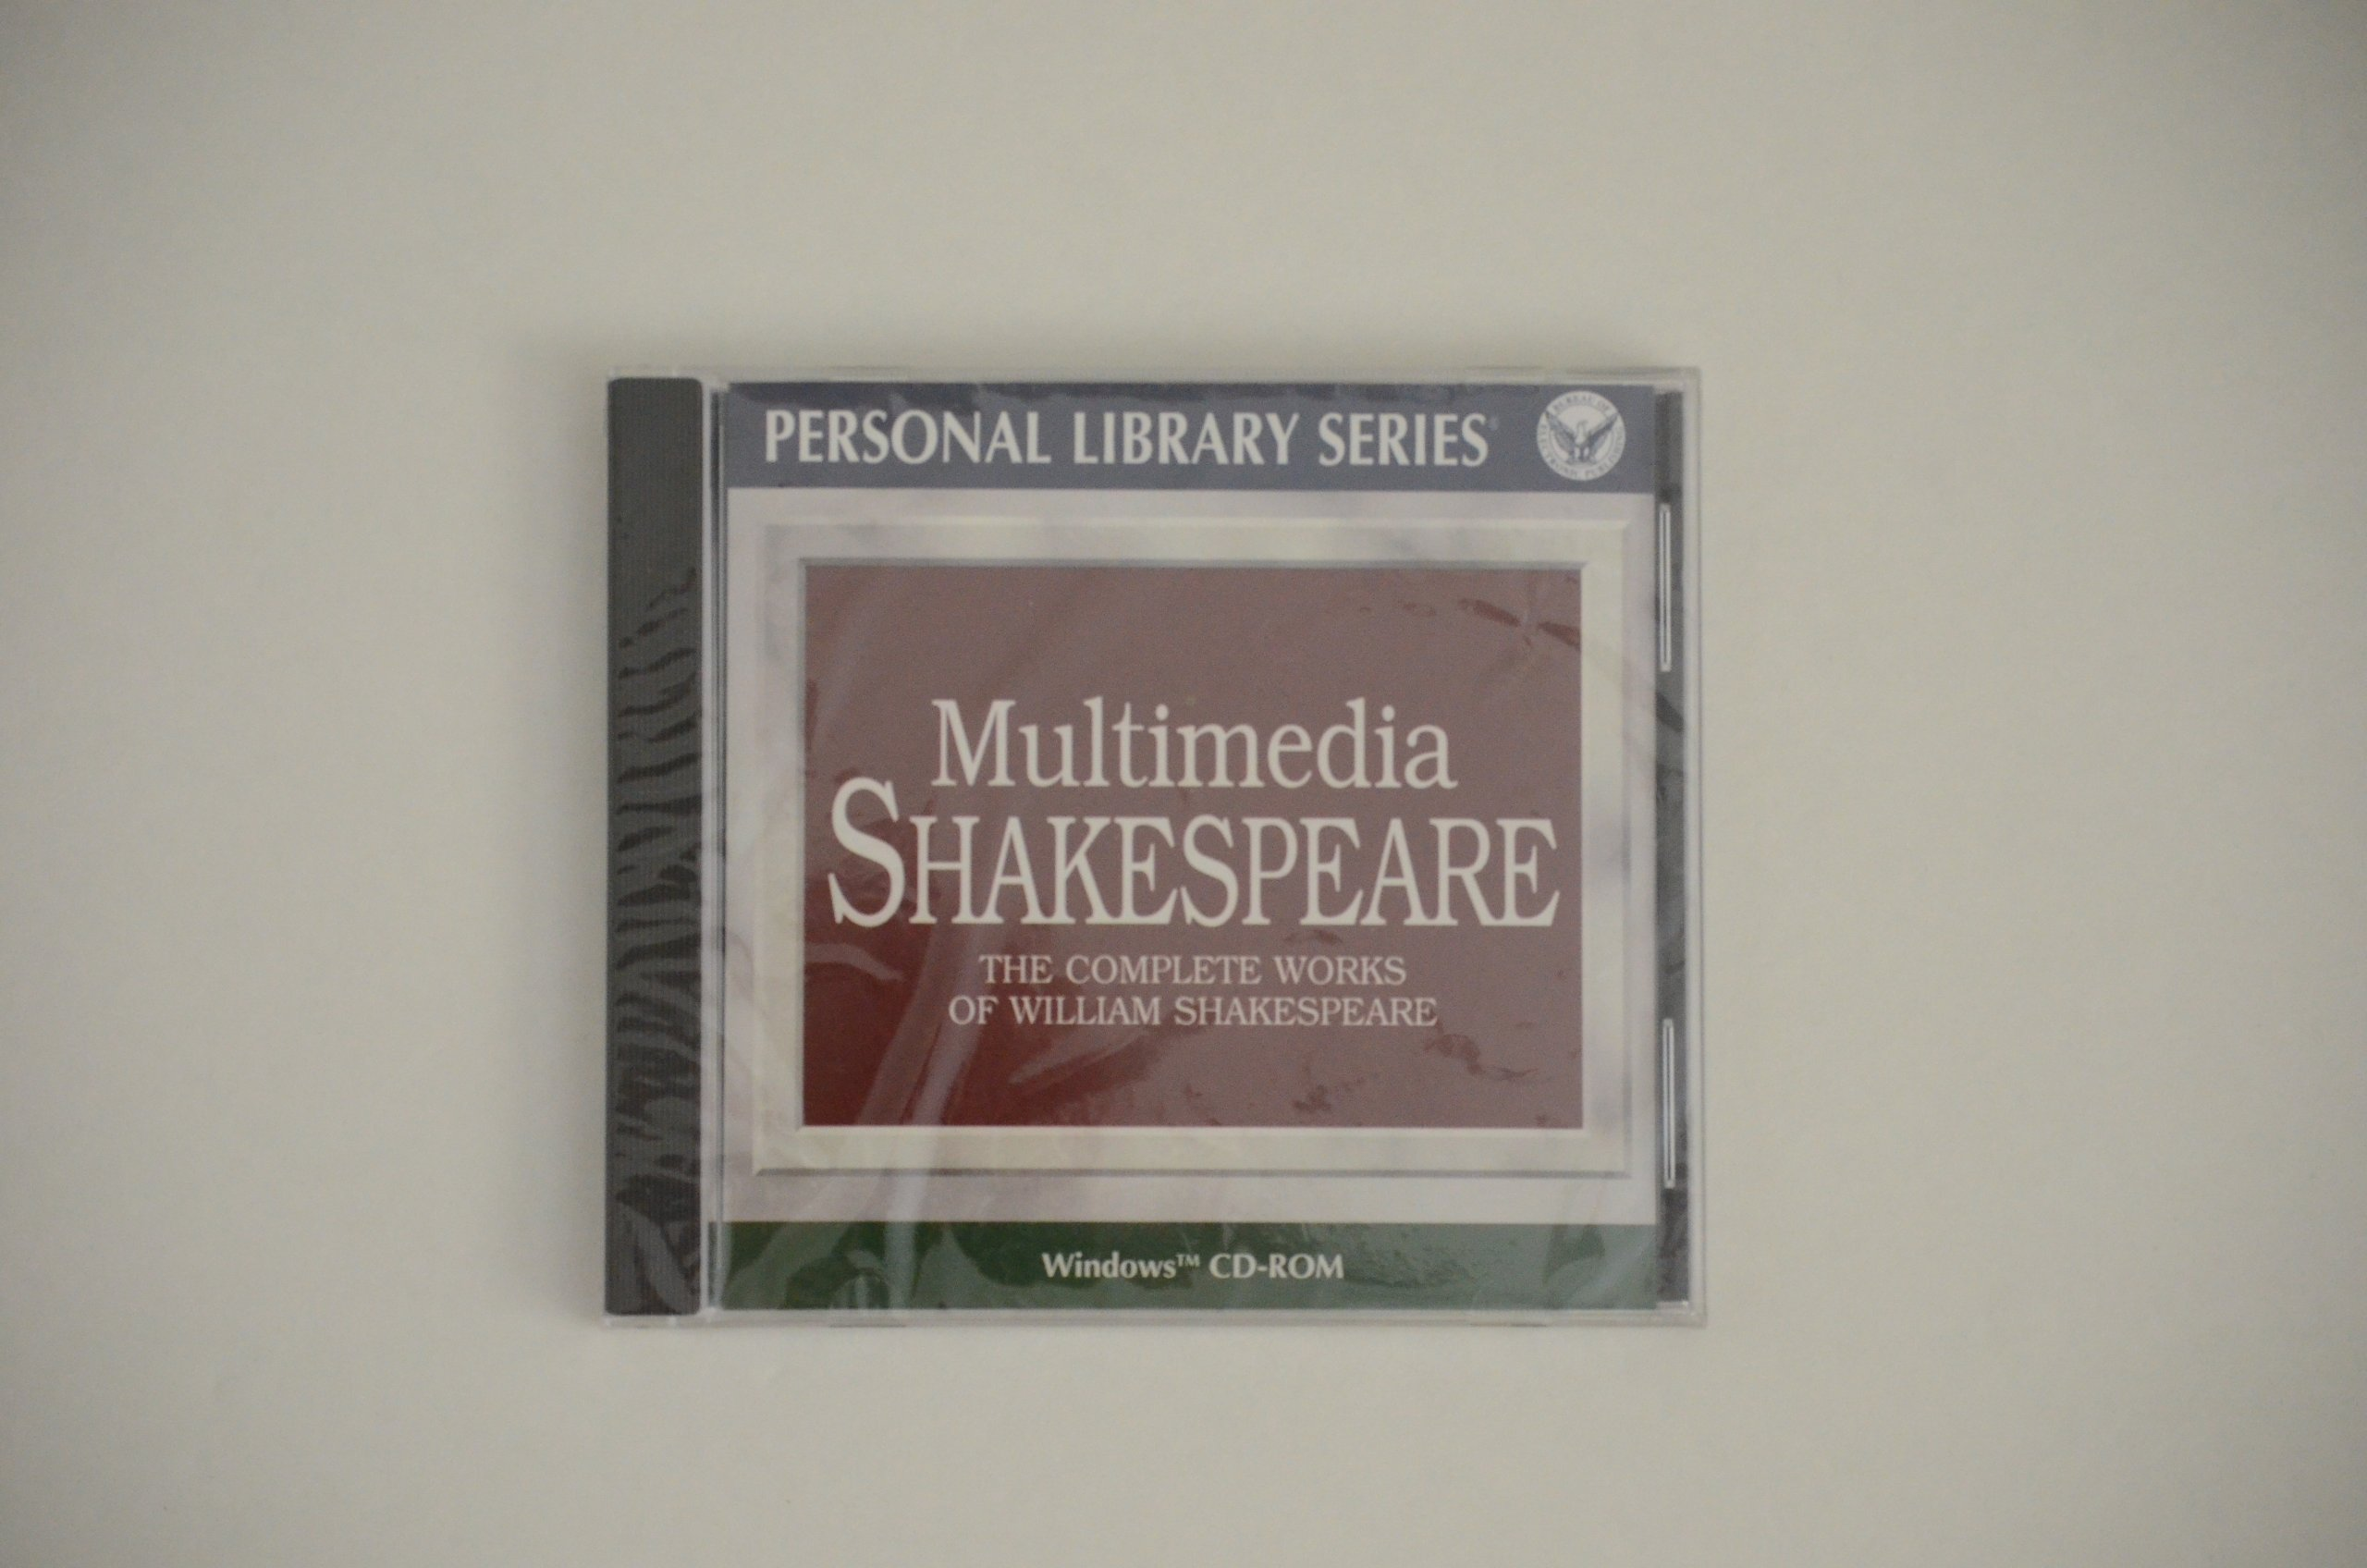 William Shakespeare: The Complete Works on CD-Rom